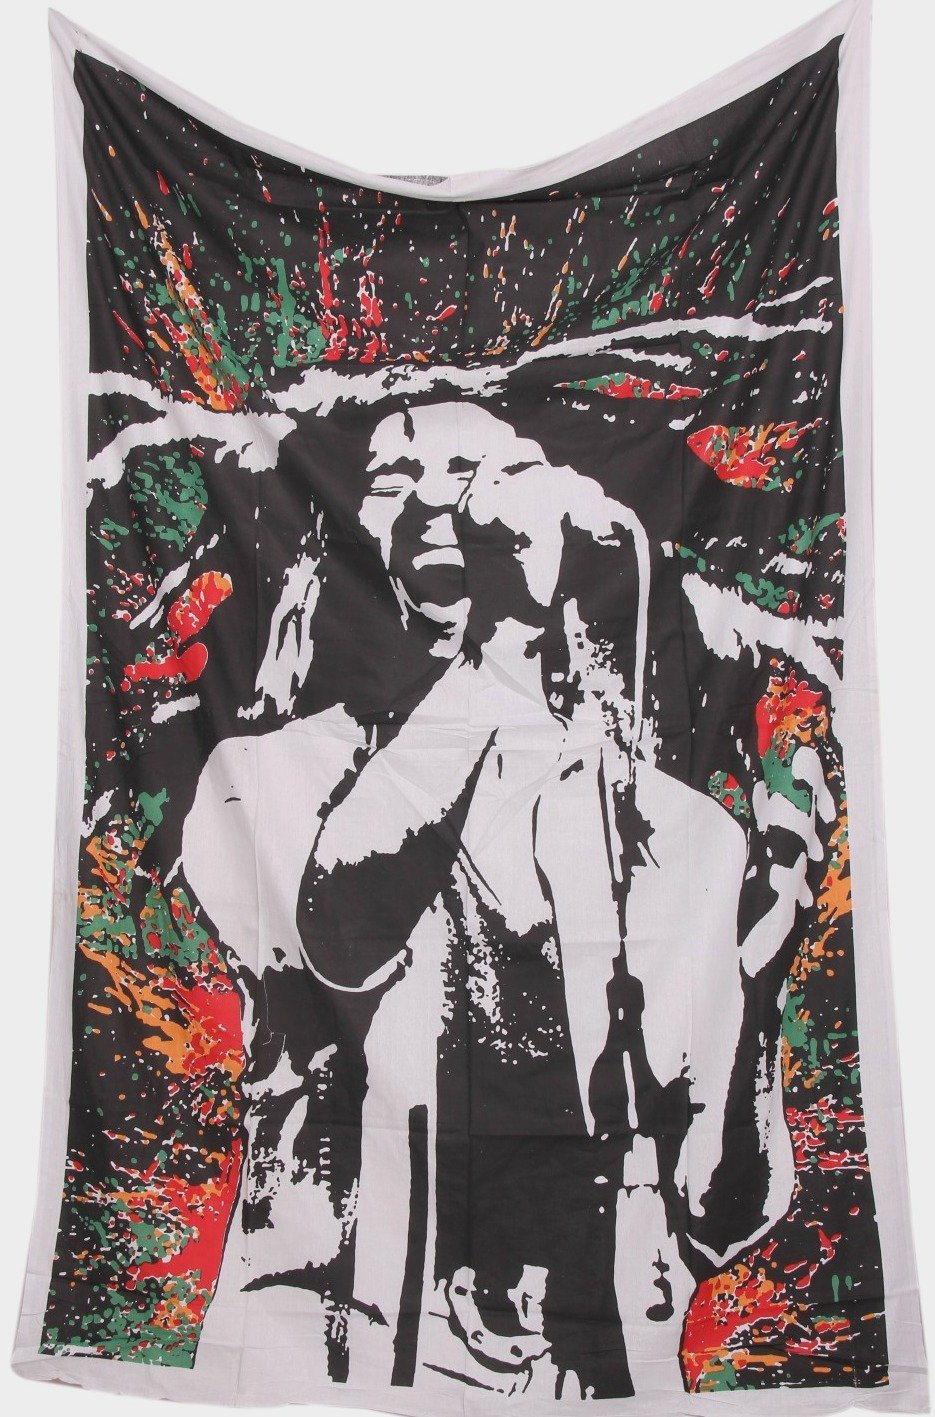 Loving Life - Bob Marley Tapestry Wall Hanging Rasta, Reggae Tapestries and wall hangings hippy hippie Tapestry Beach Cotton College Dorm Decor